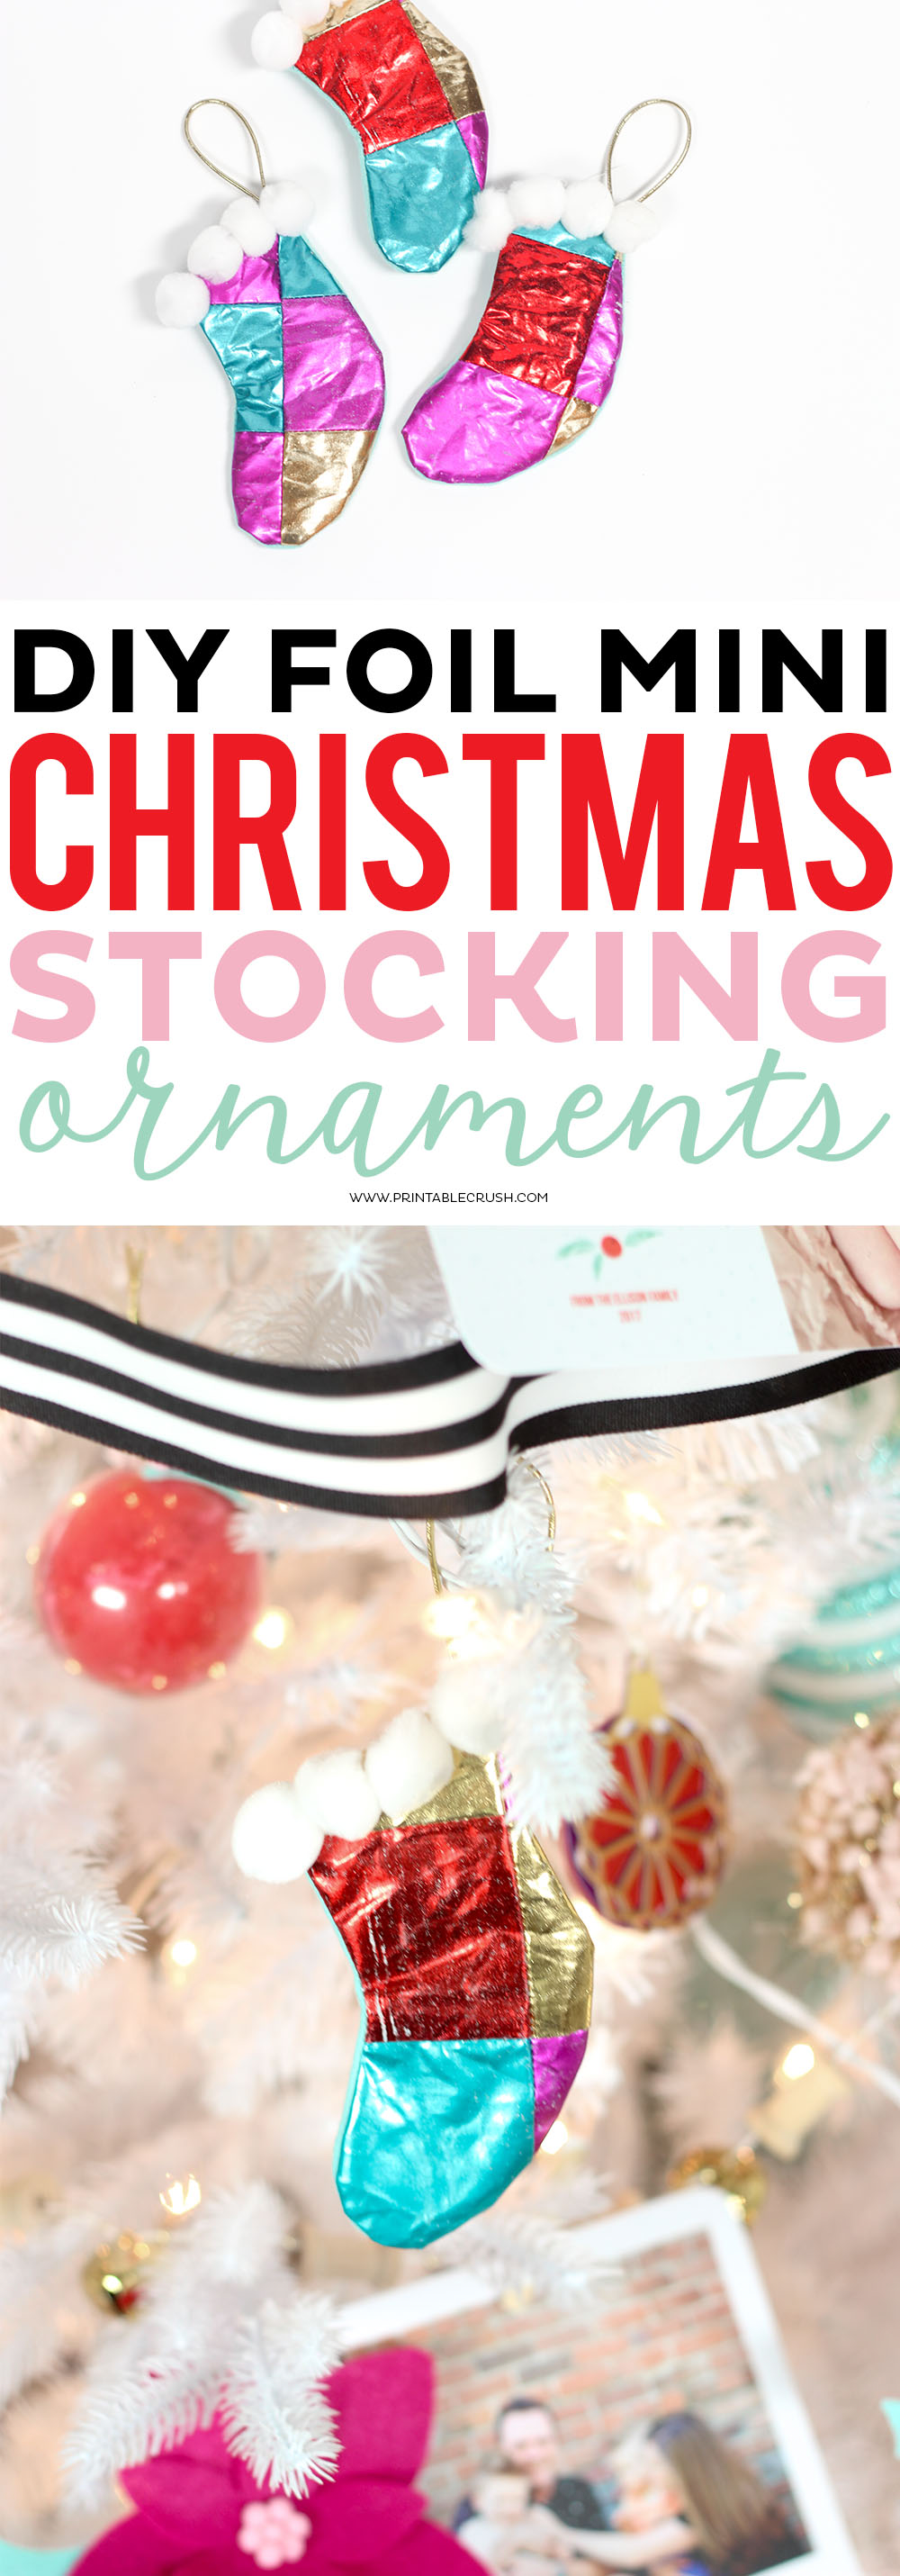 These Mini Christmas Stocking Ornaments are adorable with the shiny foil quilt design and pom pom embellishments. Great for those starting out with sewing!